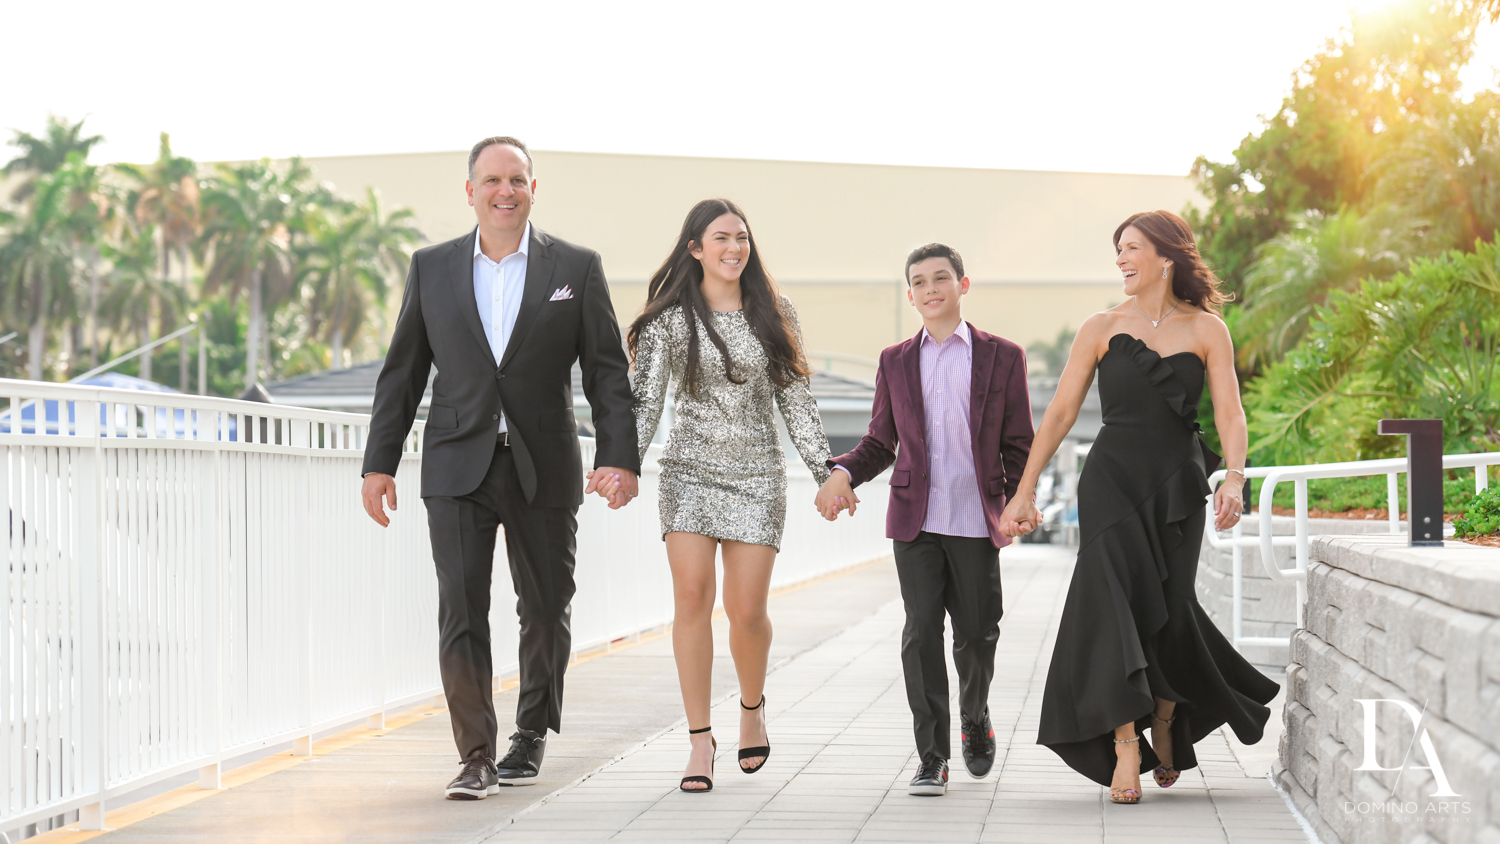 fun family pictures at Football Theme Bar Mitzvah at Temple Beth El and Royal Palm Yacht Club by Domino Arts Photography